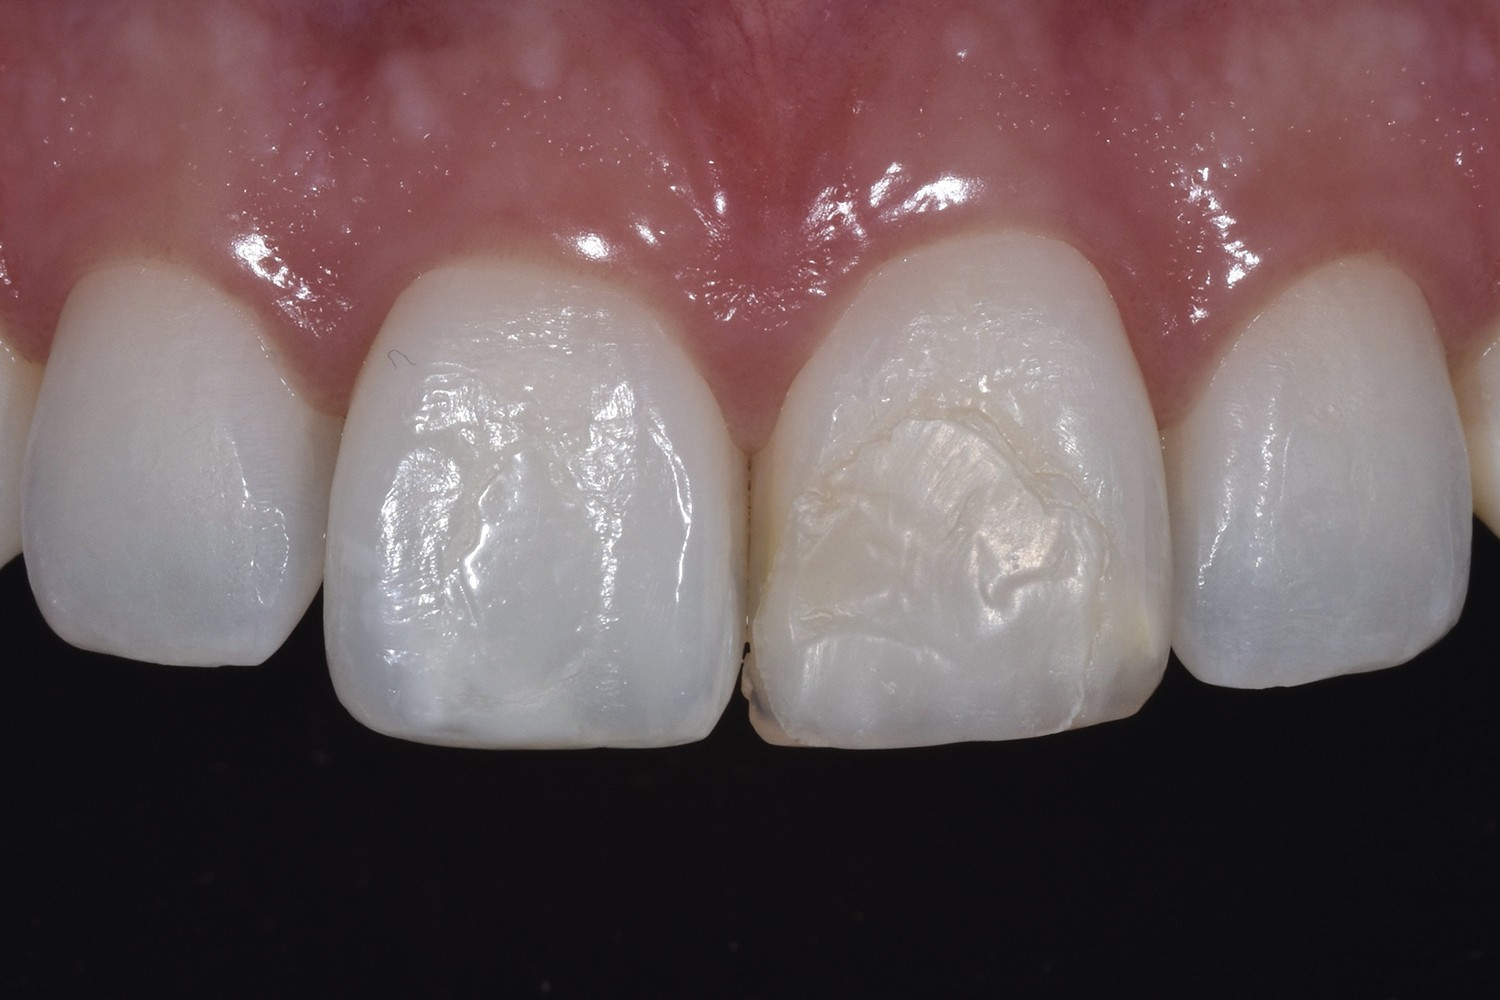 Conservative clinical solutions to molar incisor hypomineralization